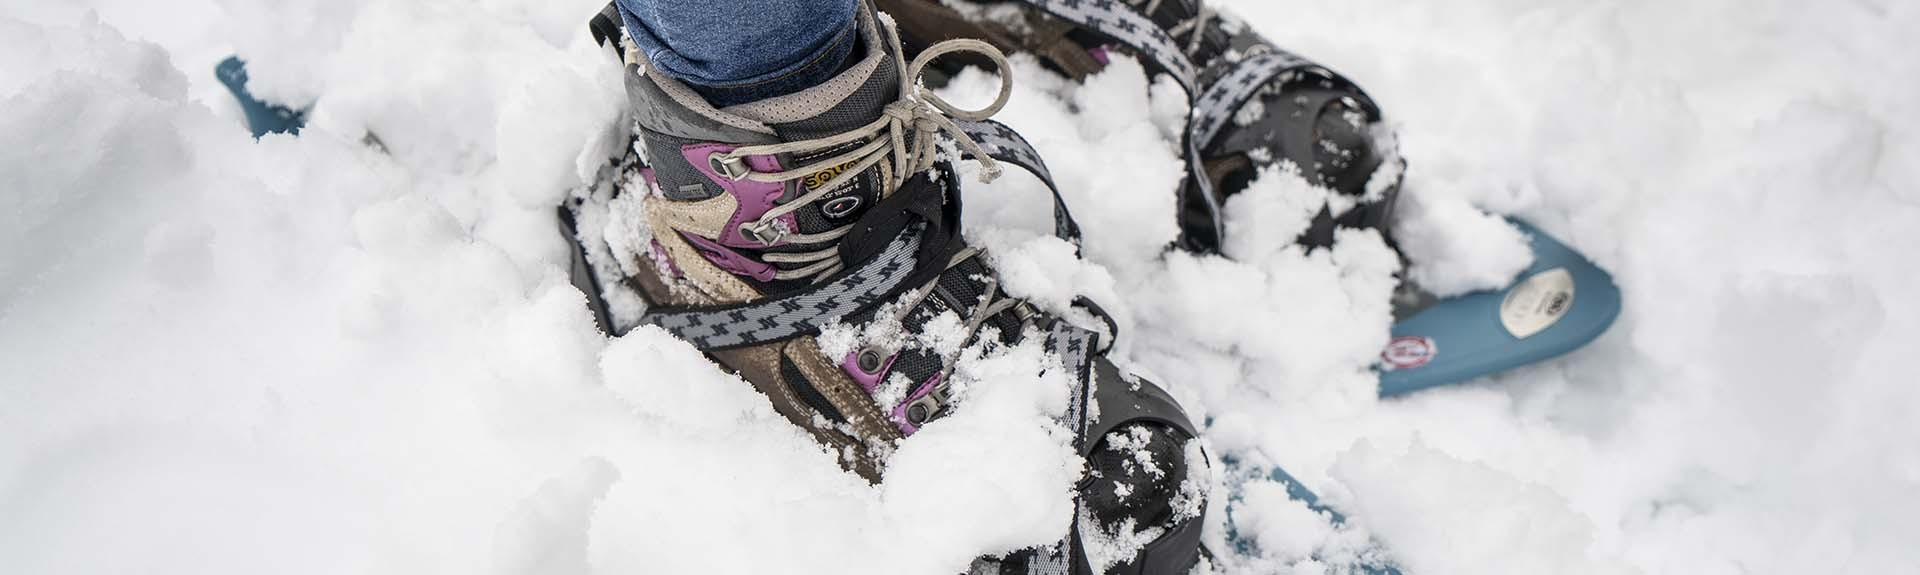 Hikes, snowshoeing